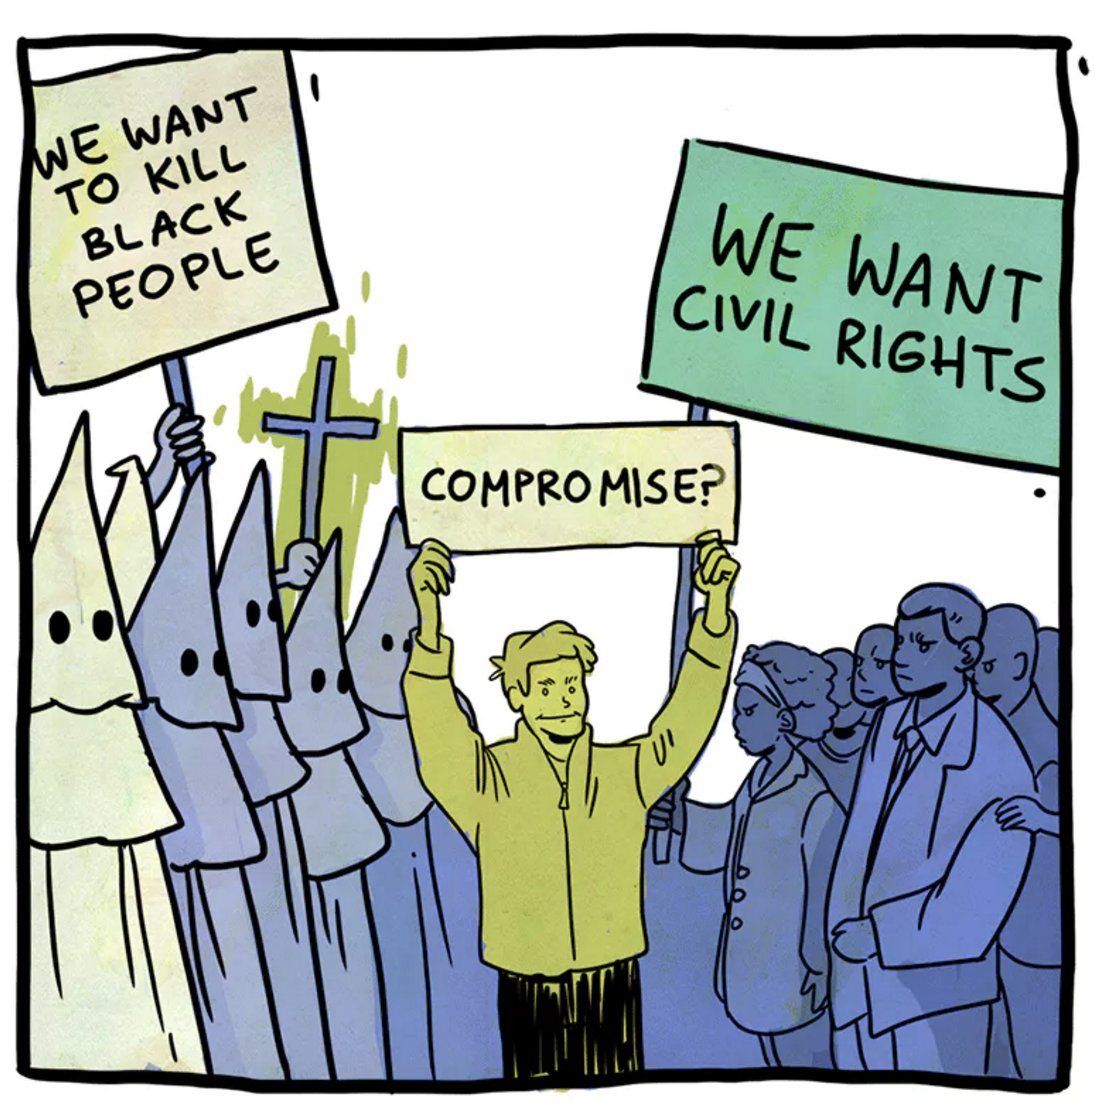 Image result for cartoon compromise black lives KKK